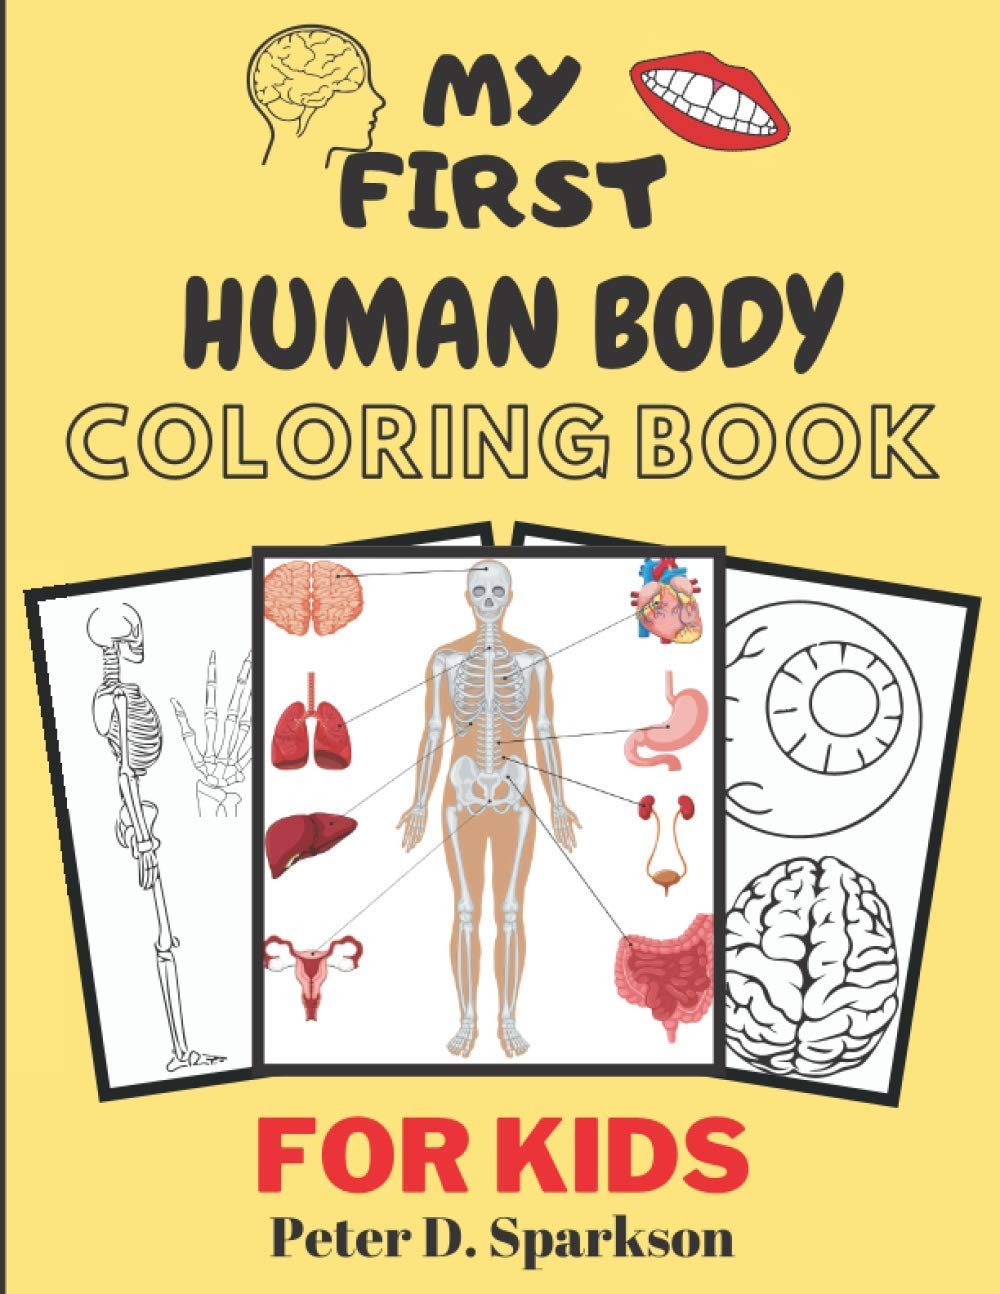 My First Human Body Coloring Book For Kids Anatomy Kid Books Gifts For Teens Colouring Activity Body Parts D Sparkson Peter 9798684340932 Amazon Com Books